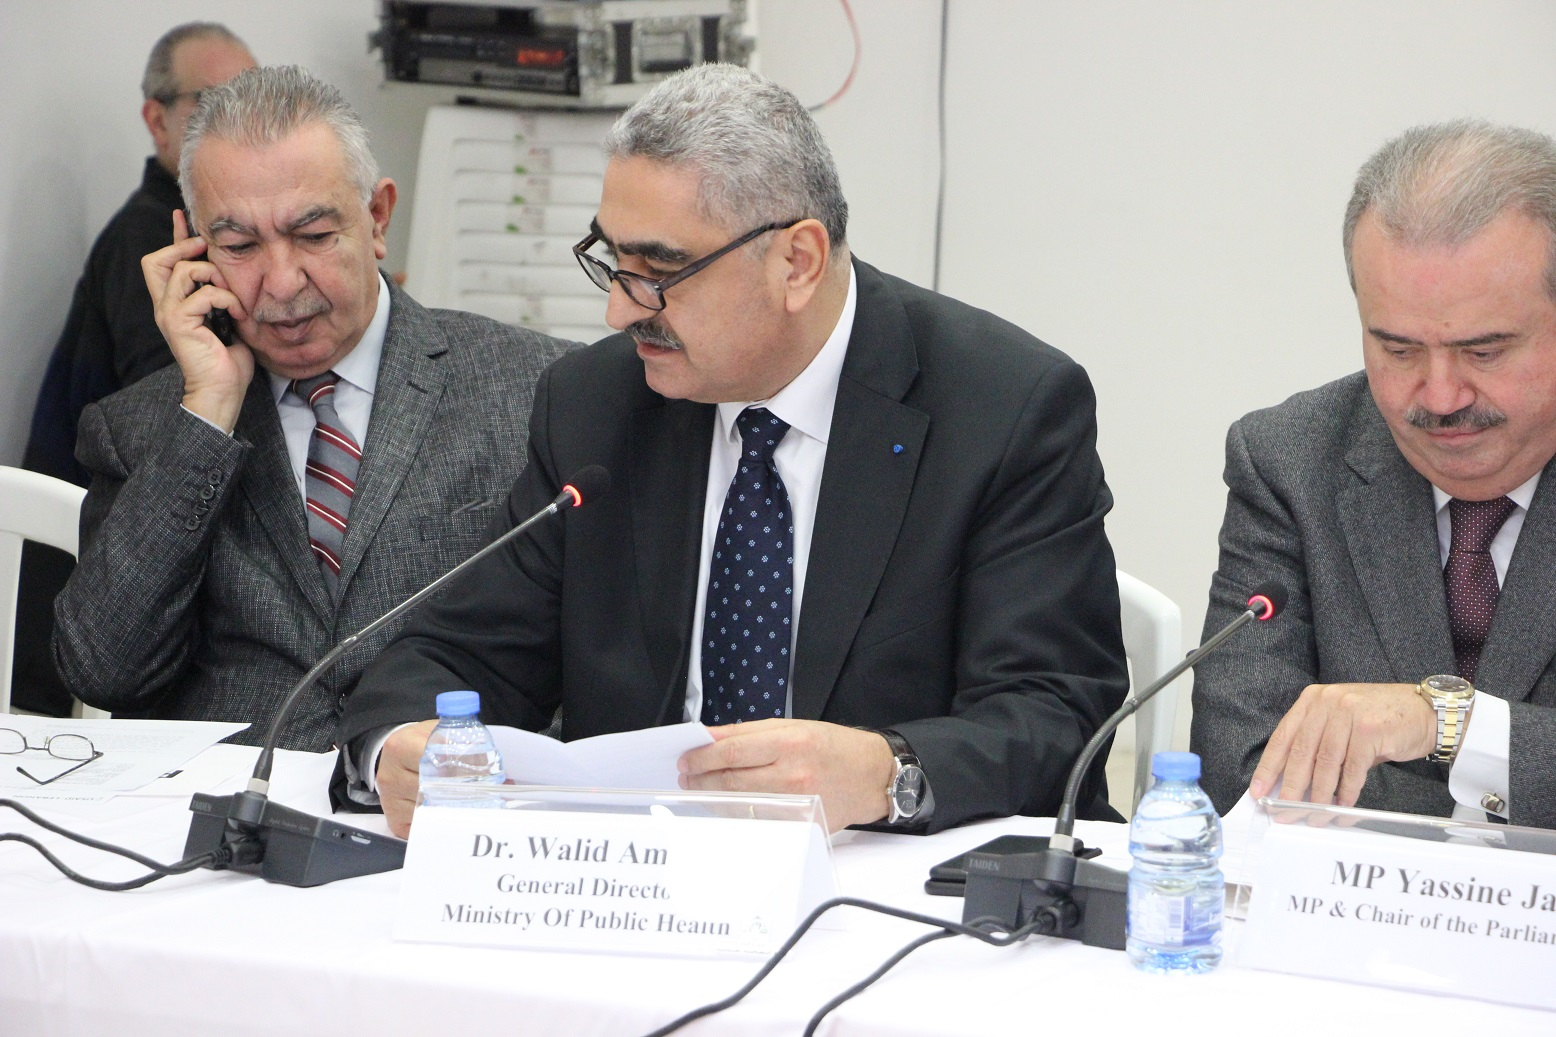 Ministry of Public Health, February 6, 2018